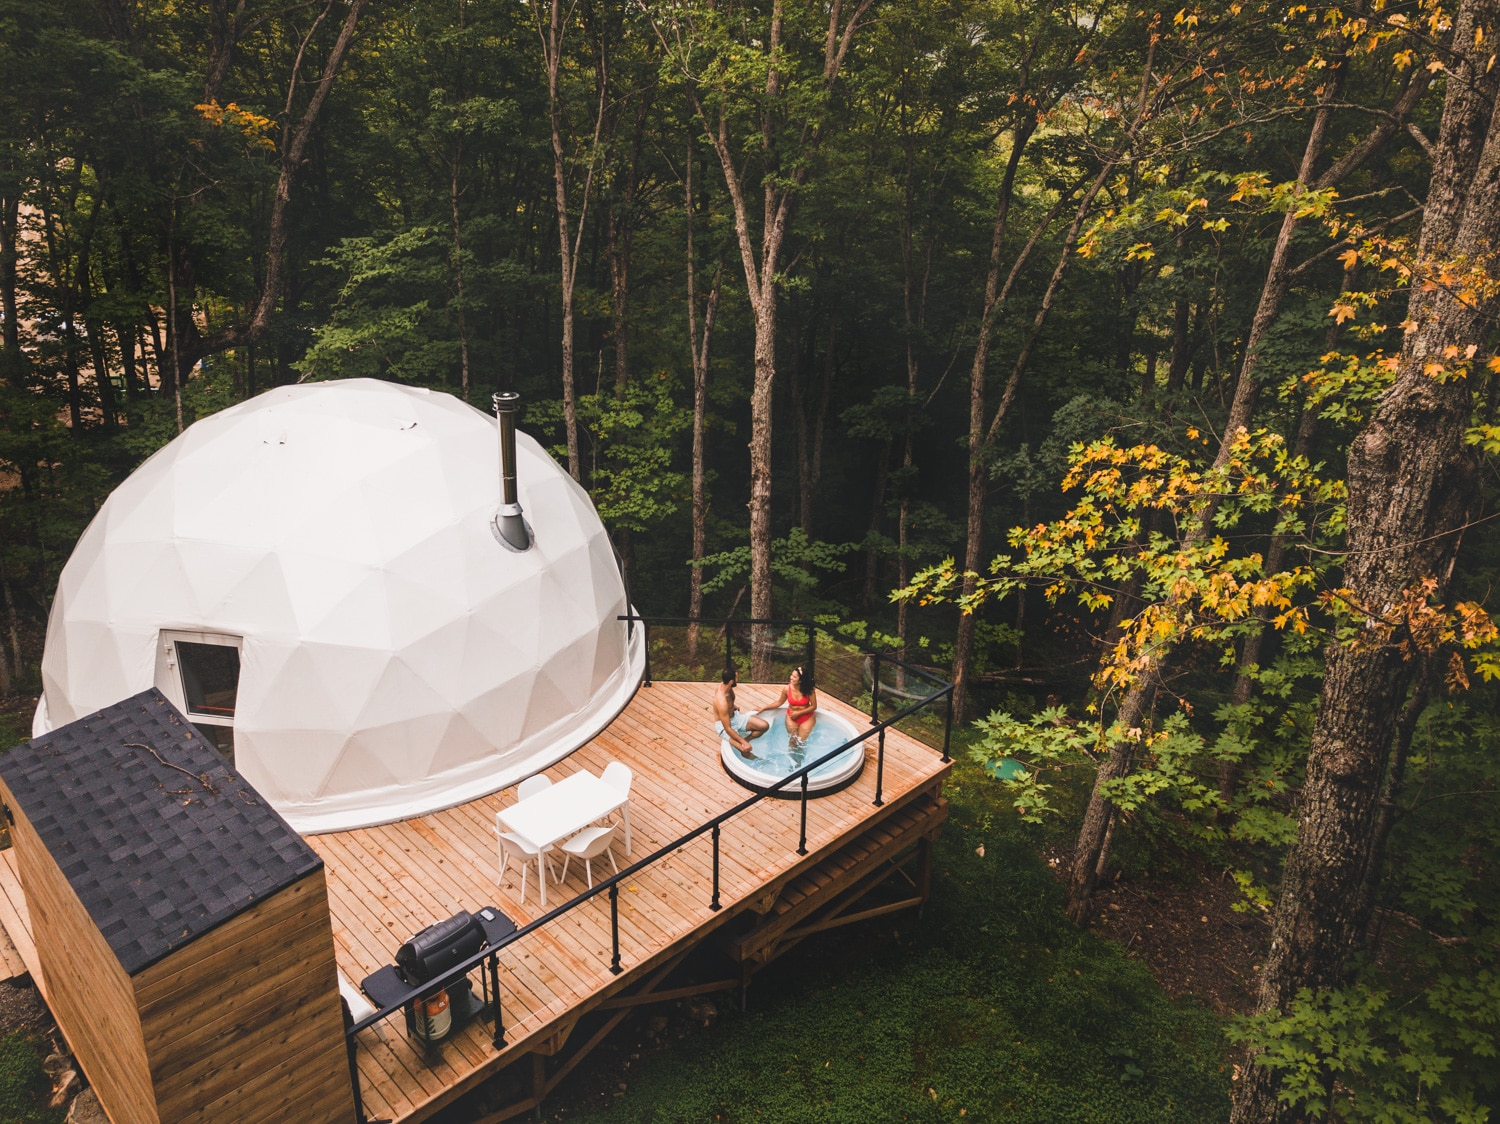 Three out of the ordinary places to stay in Quebec